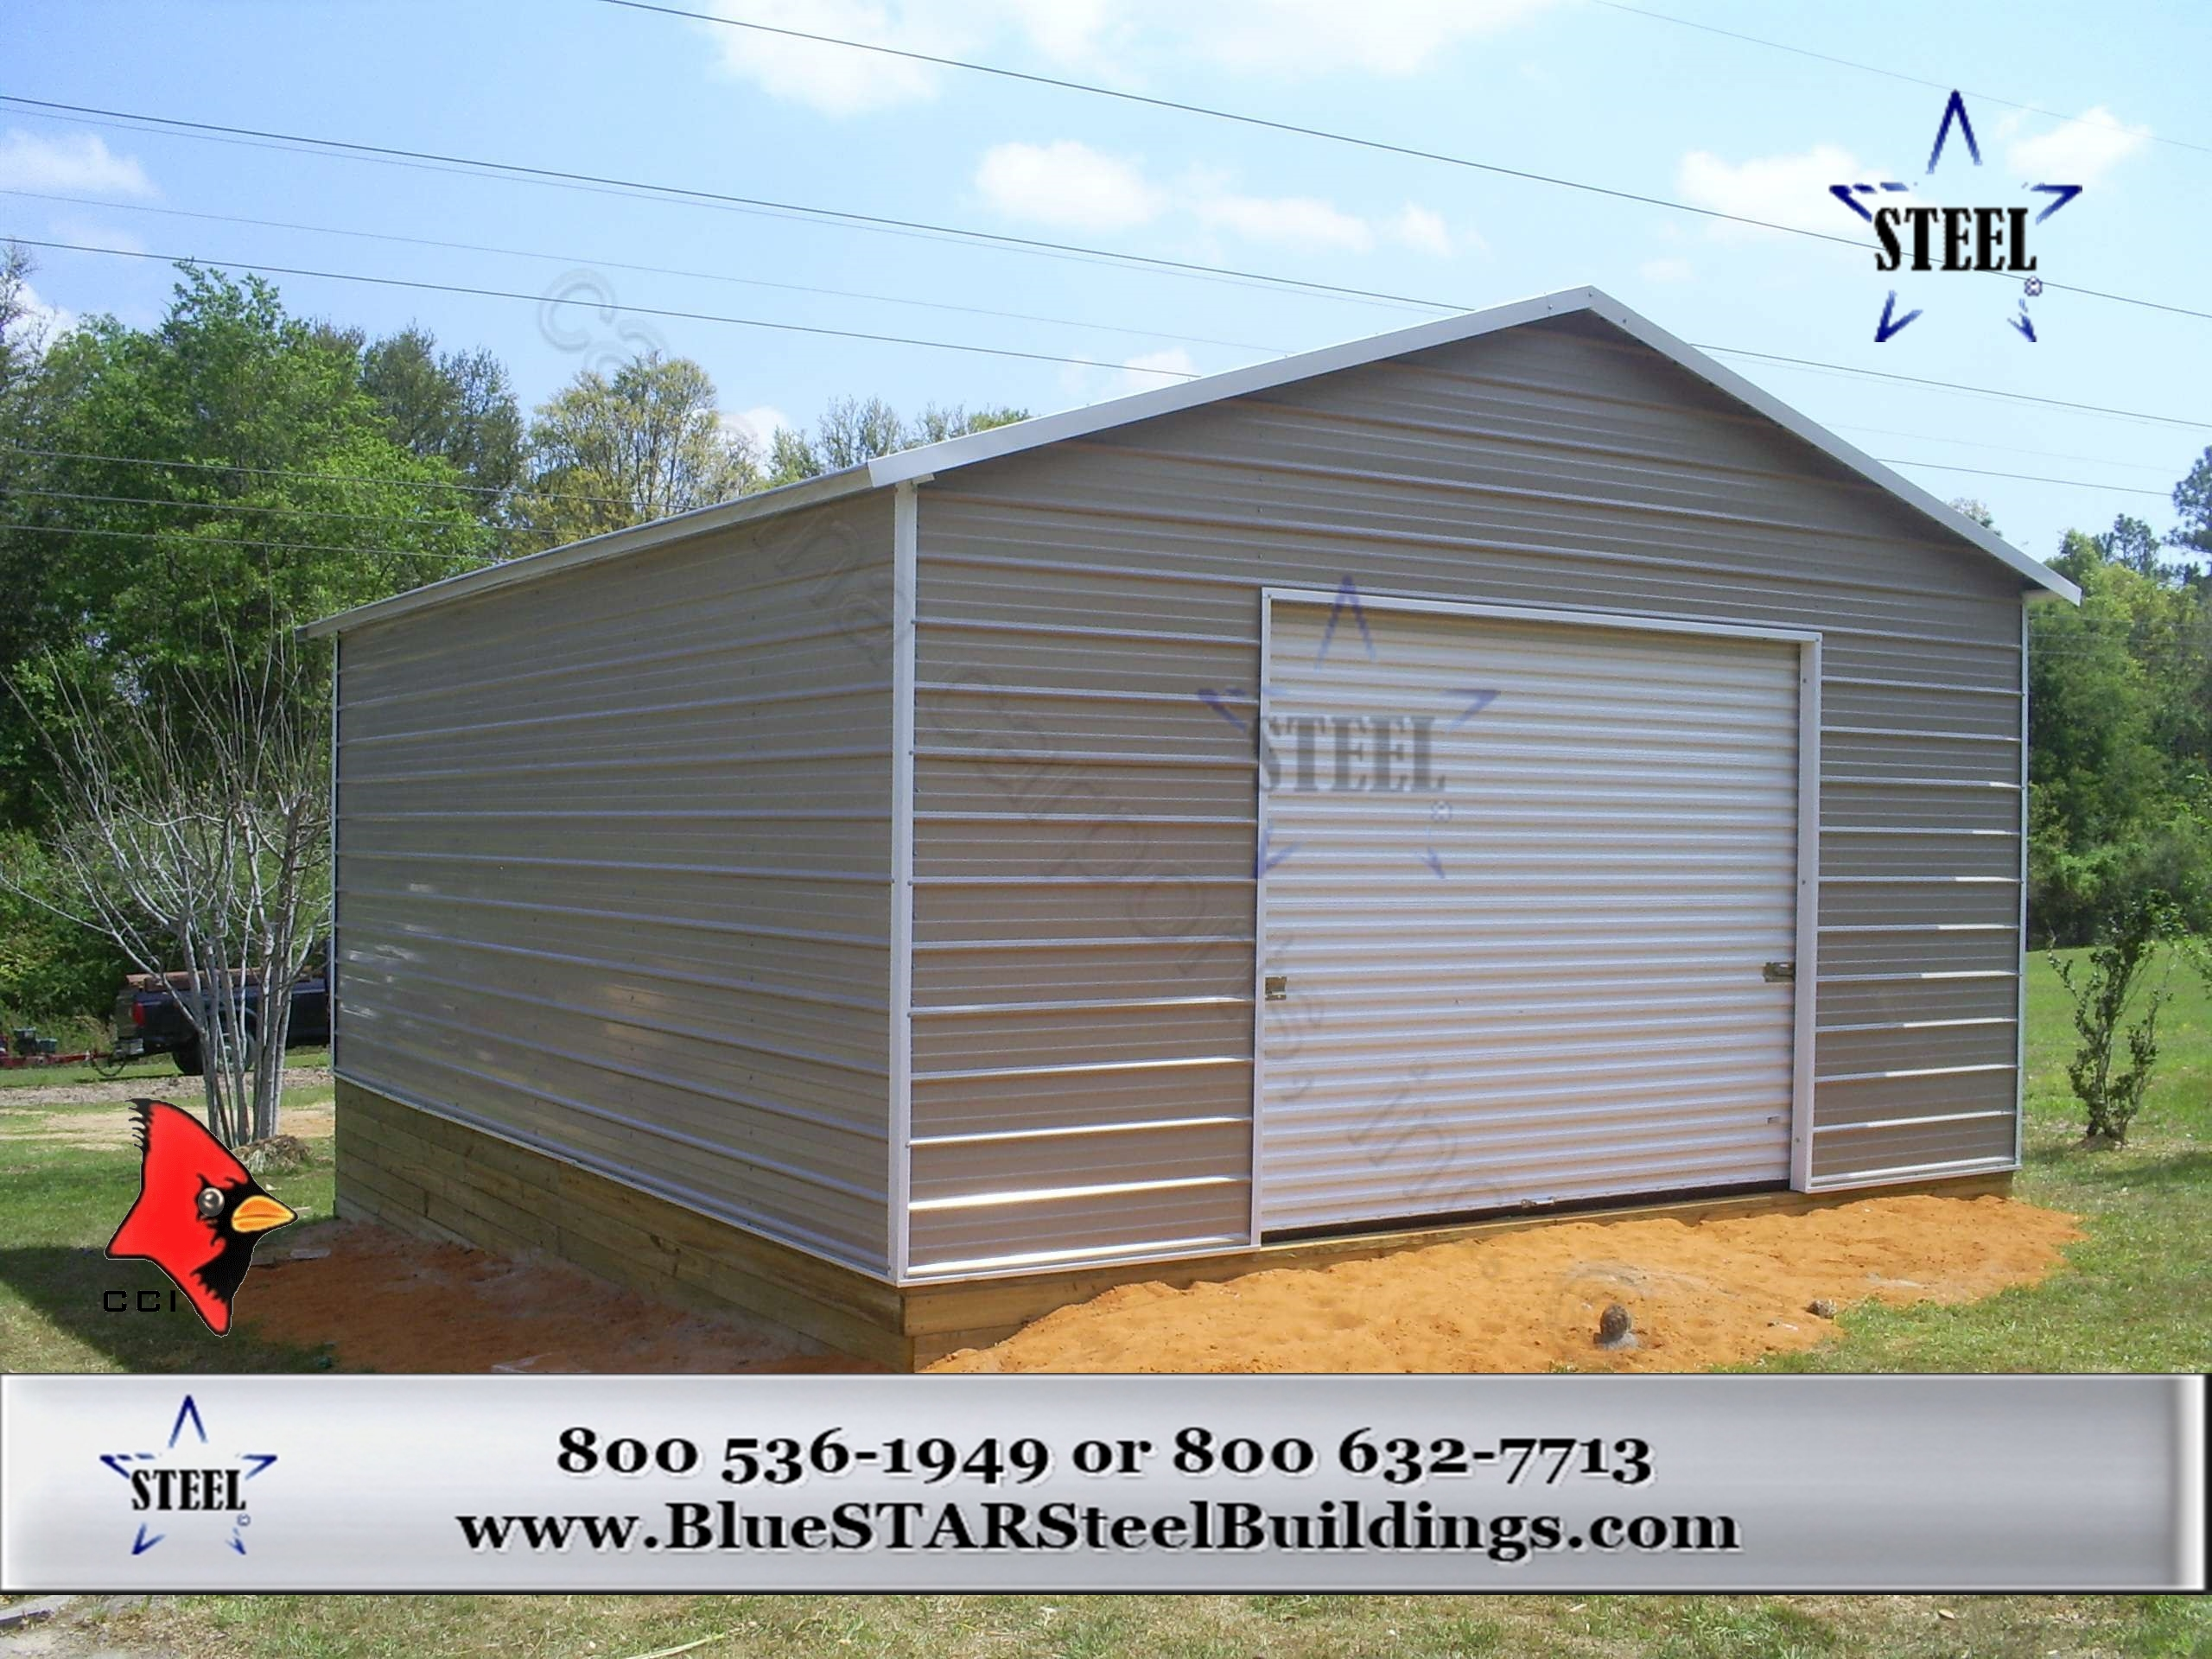 Low cost garages bluestar steel buildings for Garage low cost